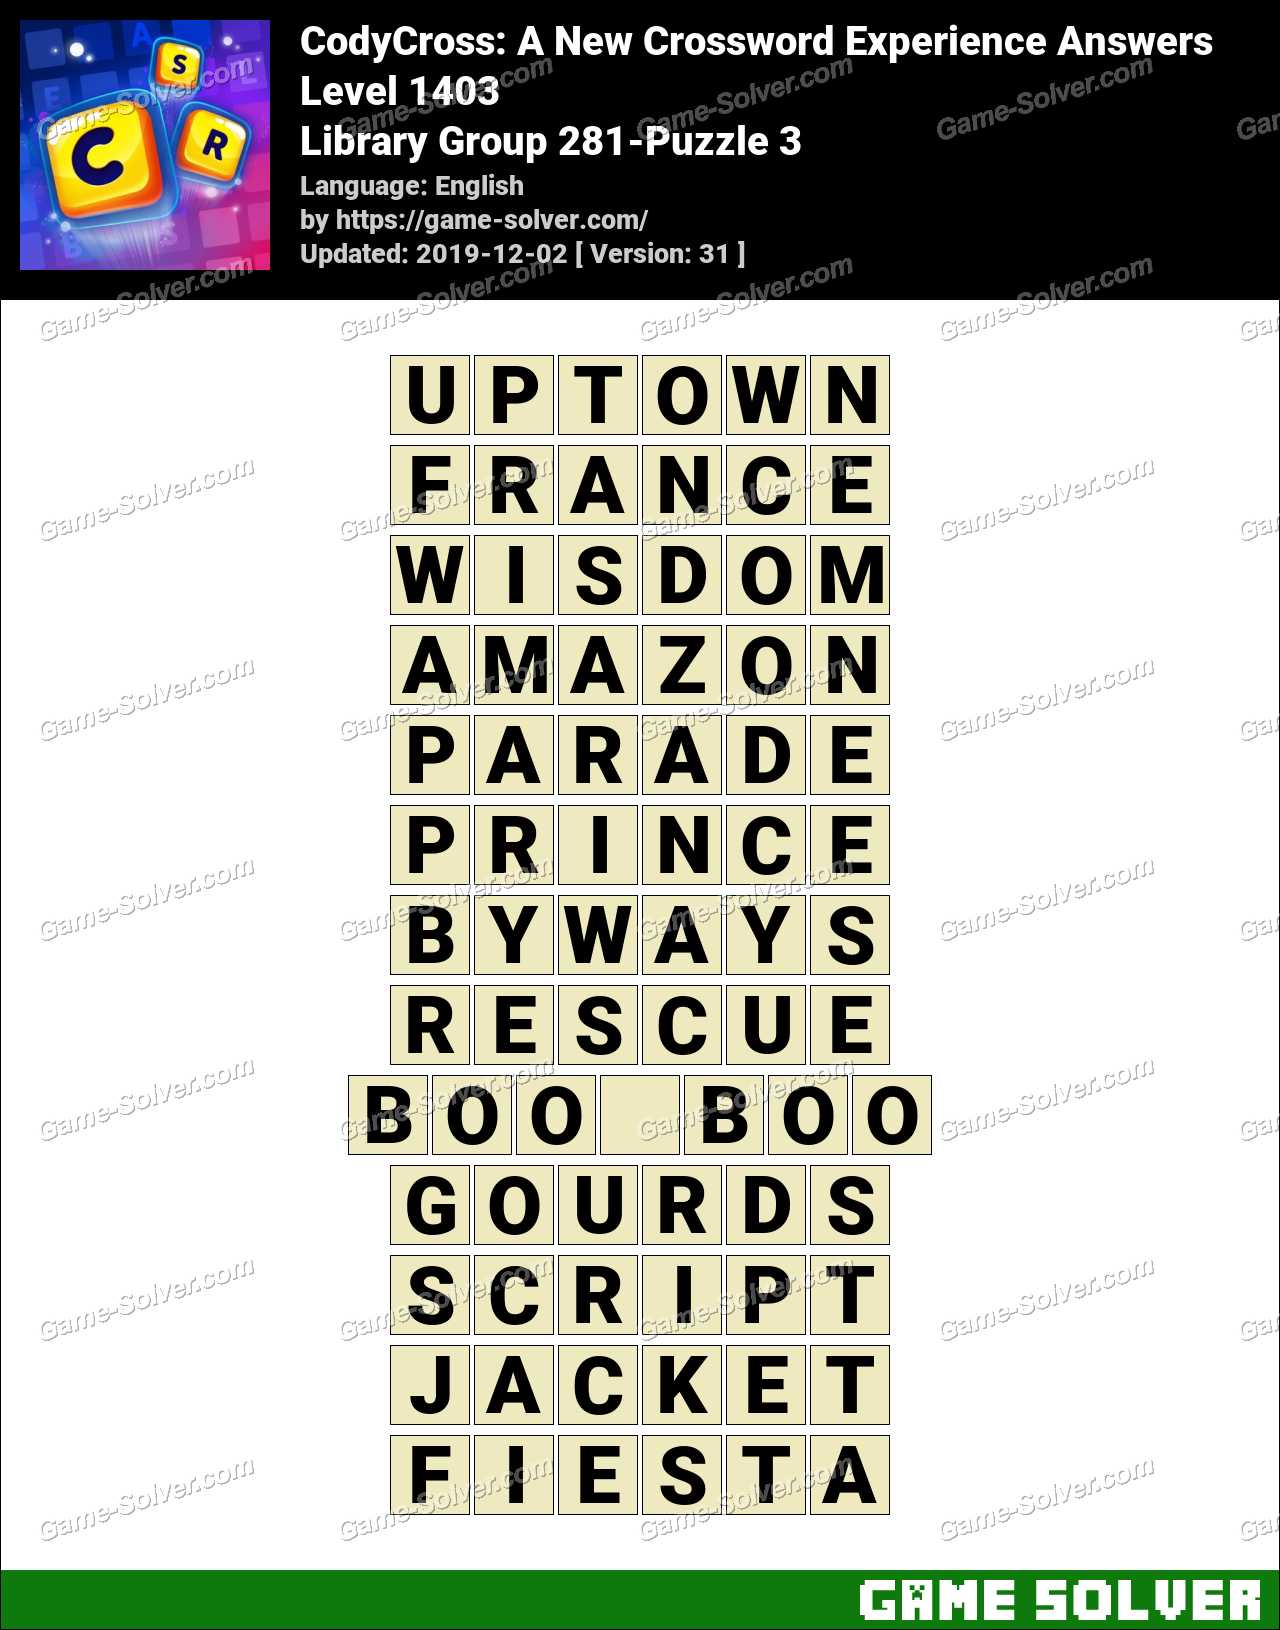 CodyCross Library Group 281-Puzzle 3 Answers